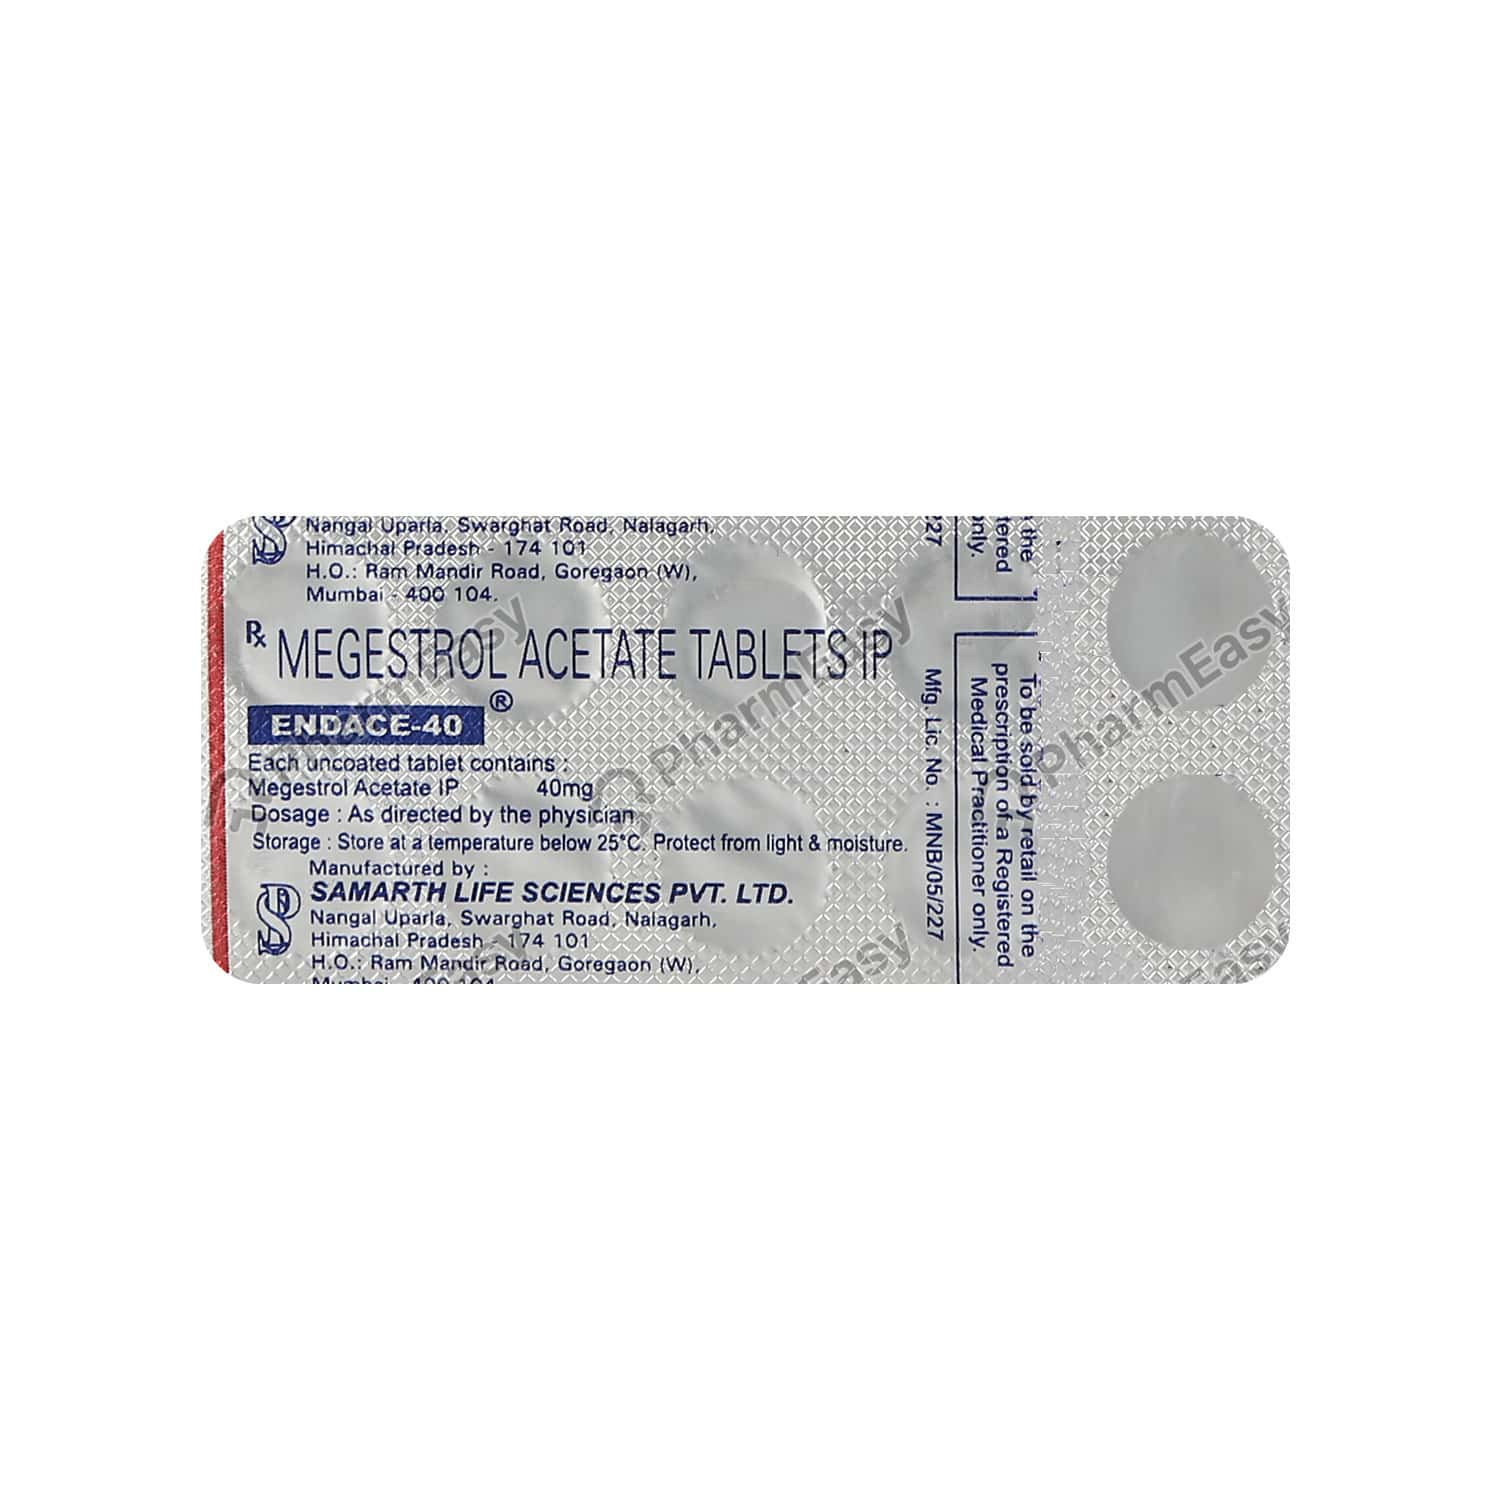 Endace 40mg Tablet